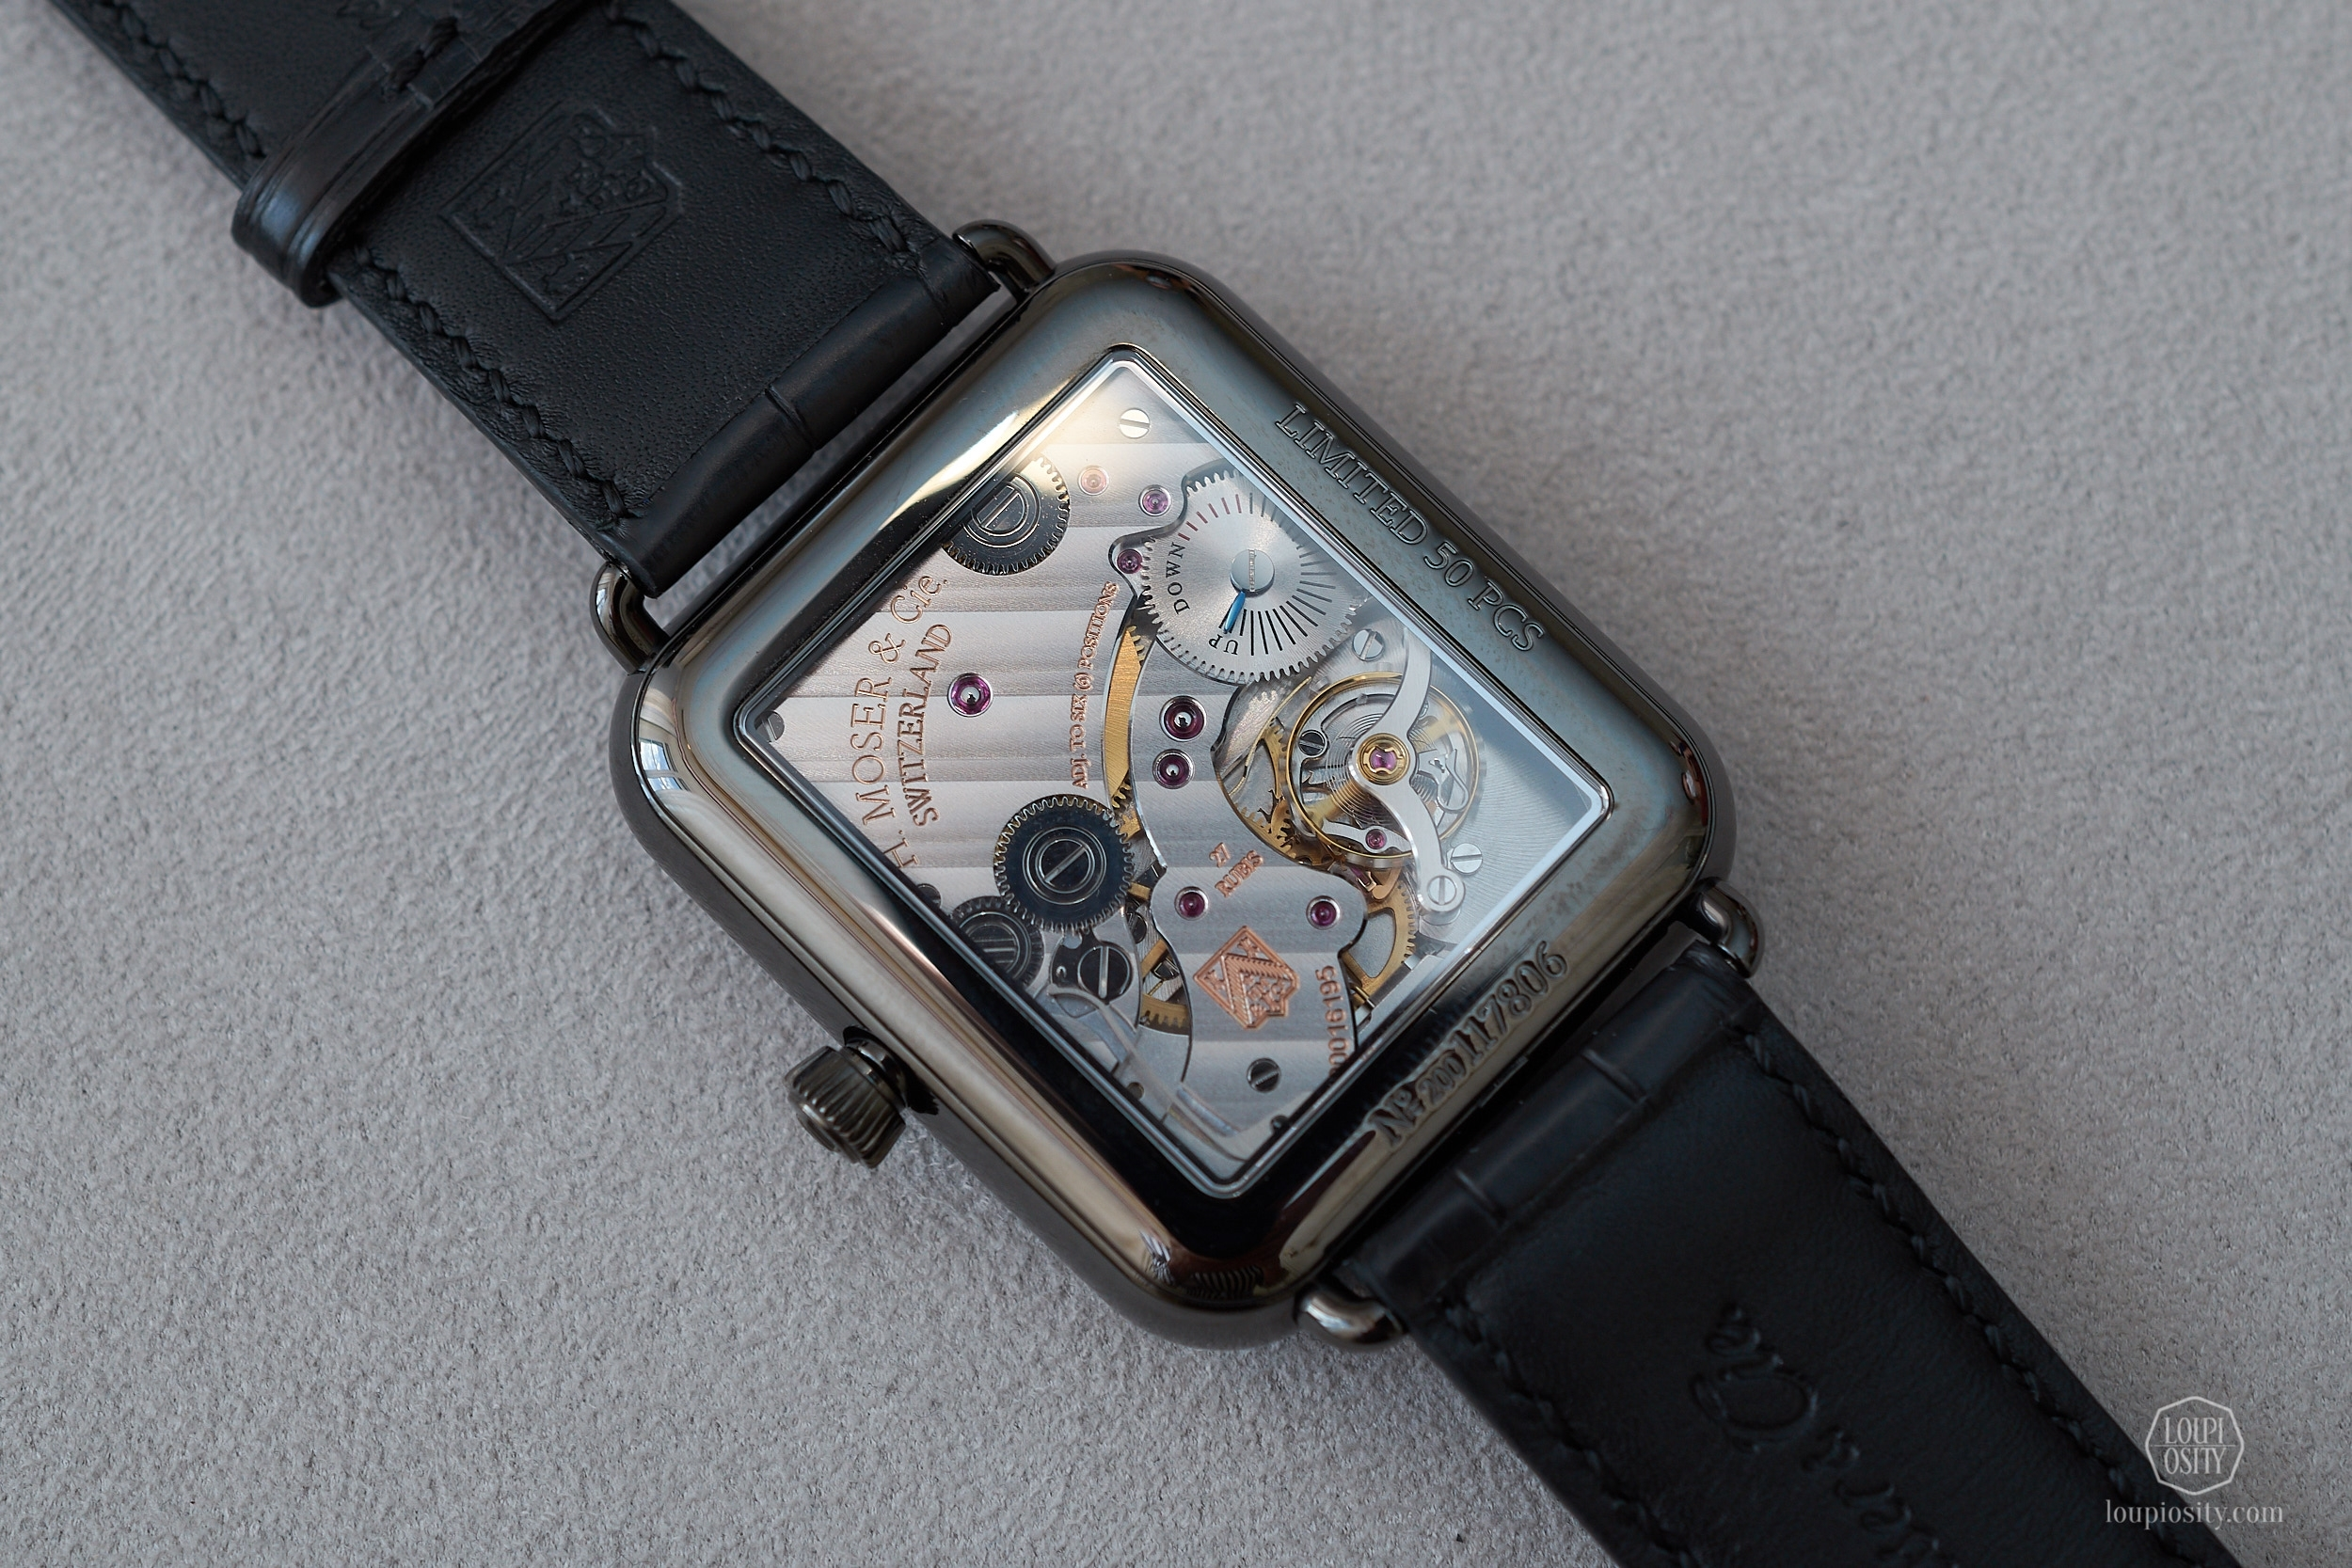 H. Moser & Cie Swiss Alp Watch Final Upgrade, movement side